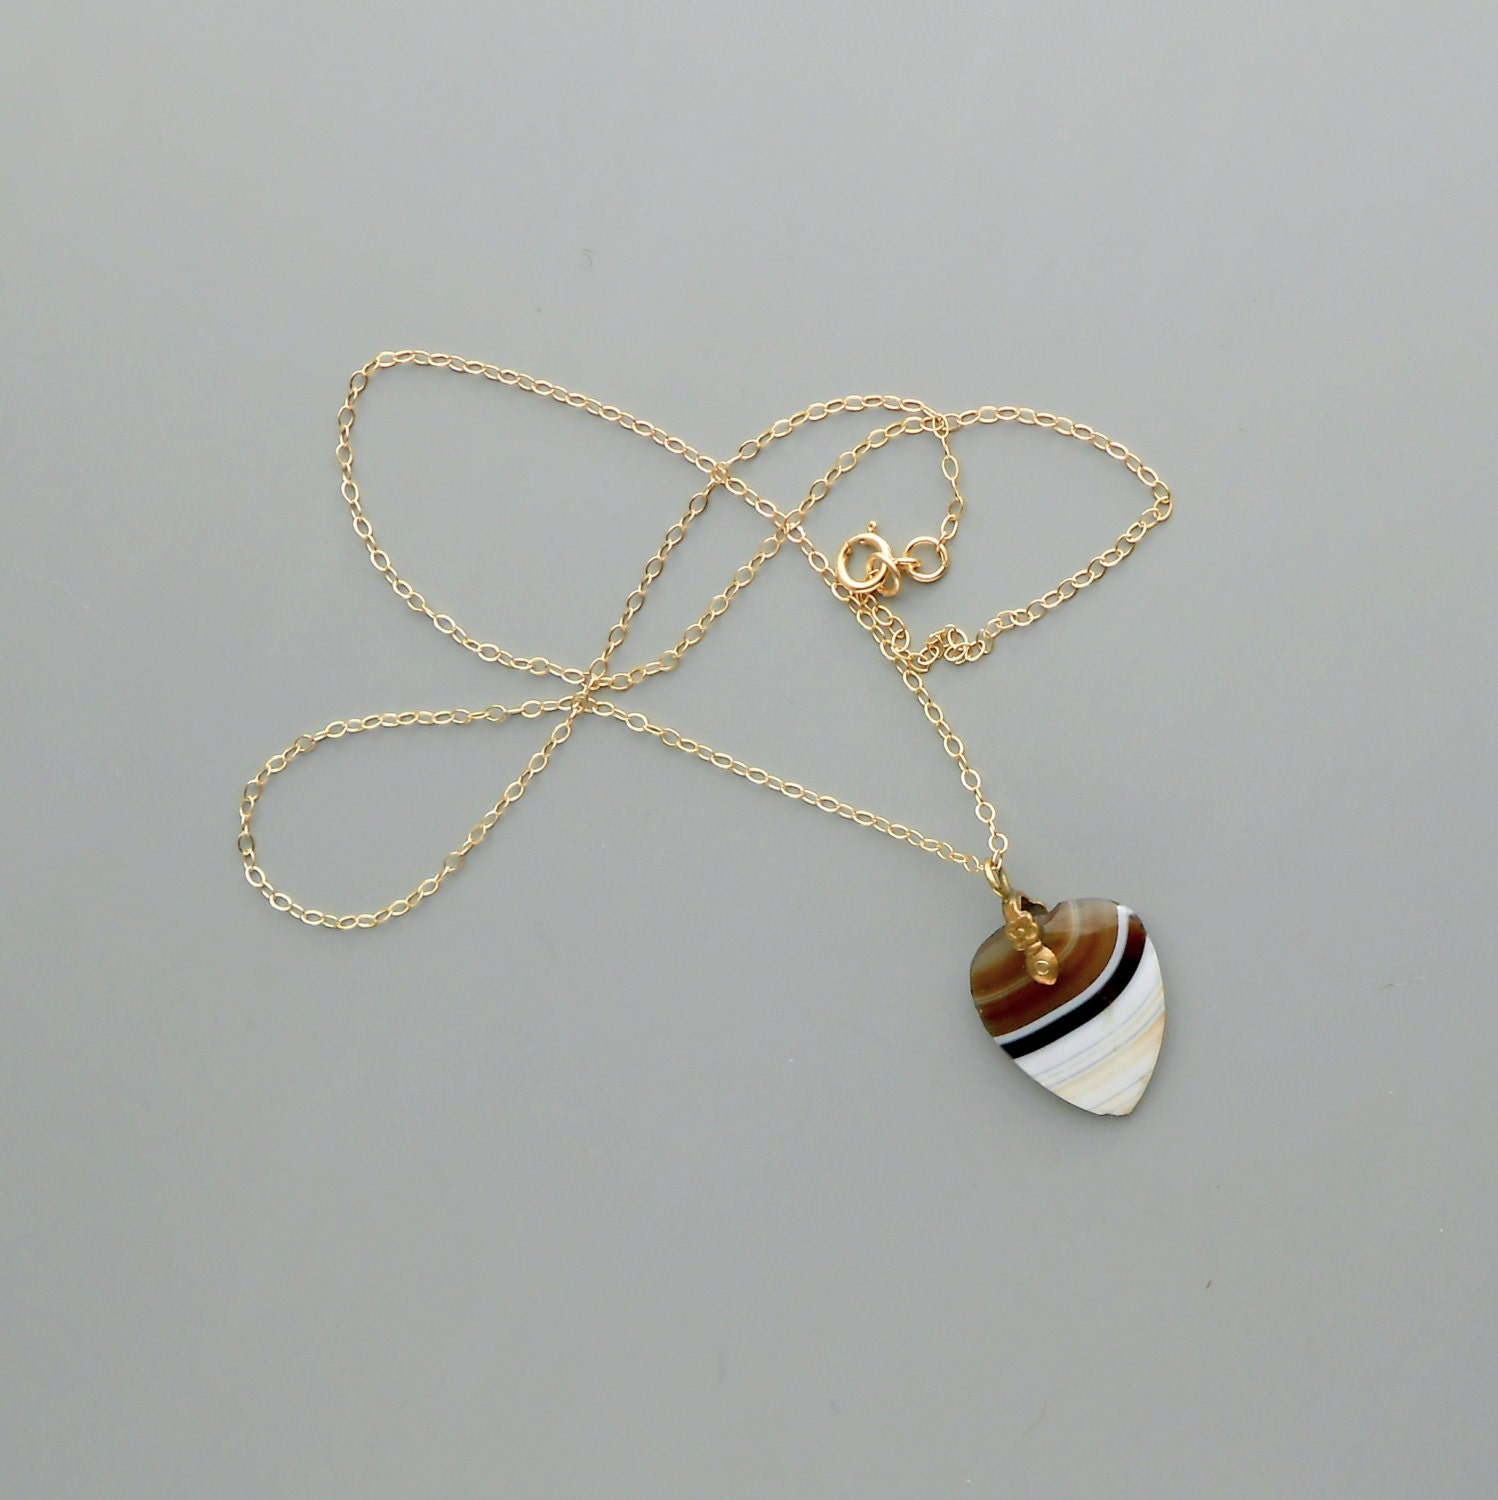 Antique Victorian Agate Heart Charm Necklace